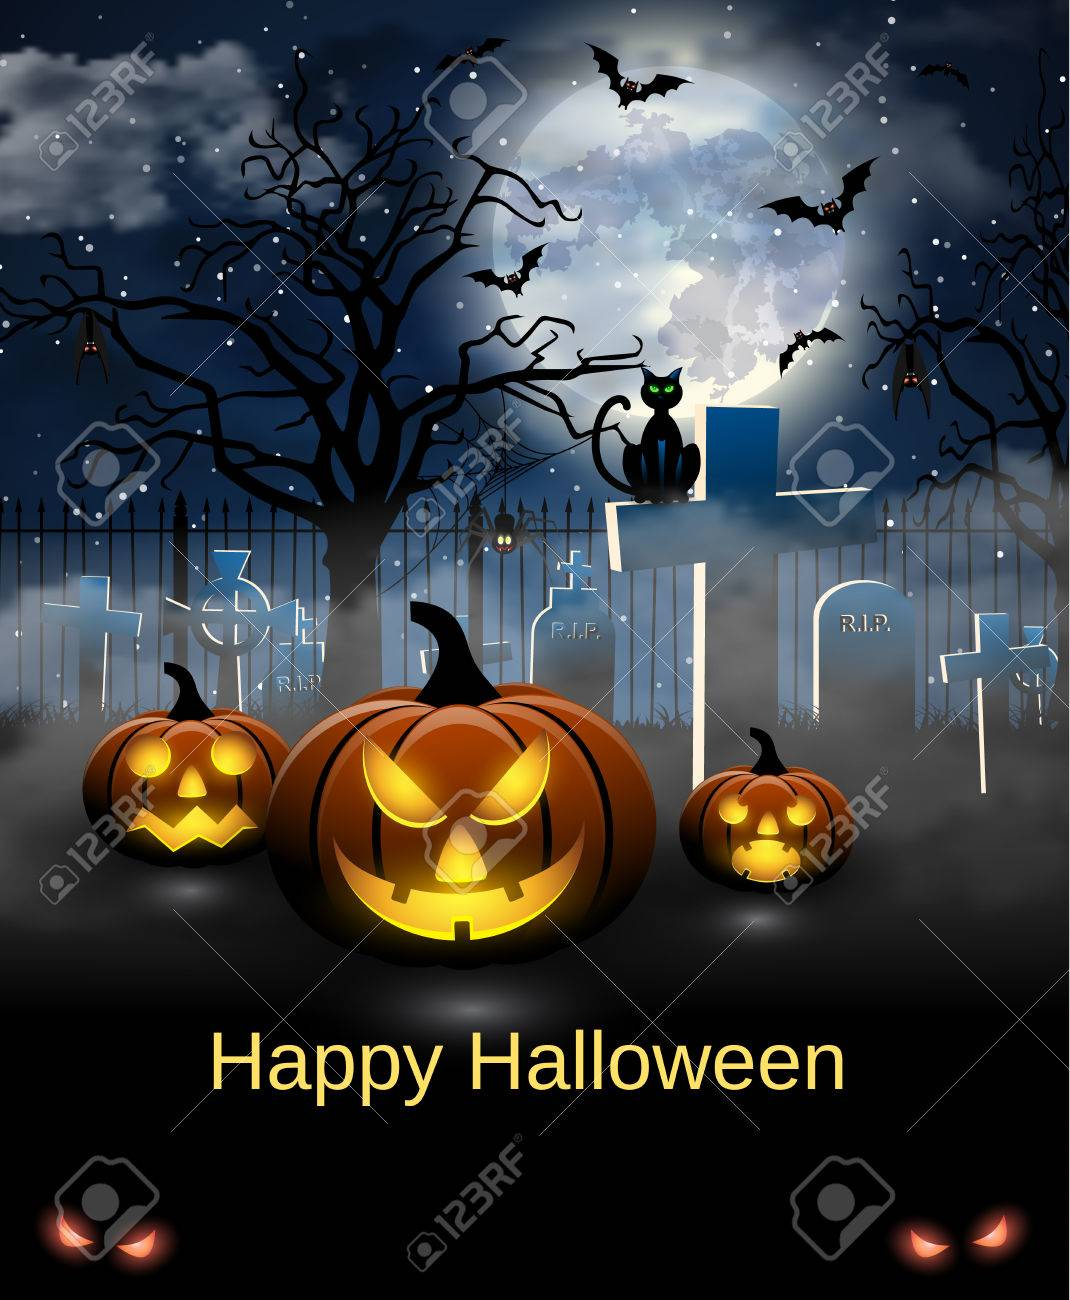 Attractive Spooky Card For Halloween. Blue Background With Full Moon, Tombstones,  Spider, Cat